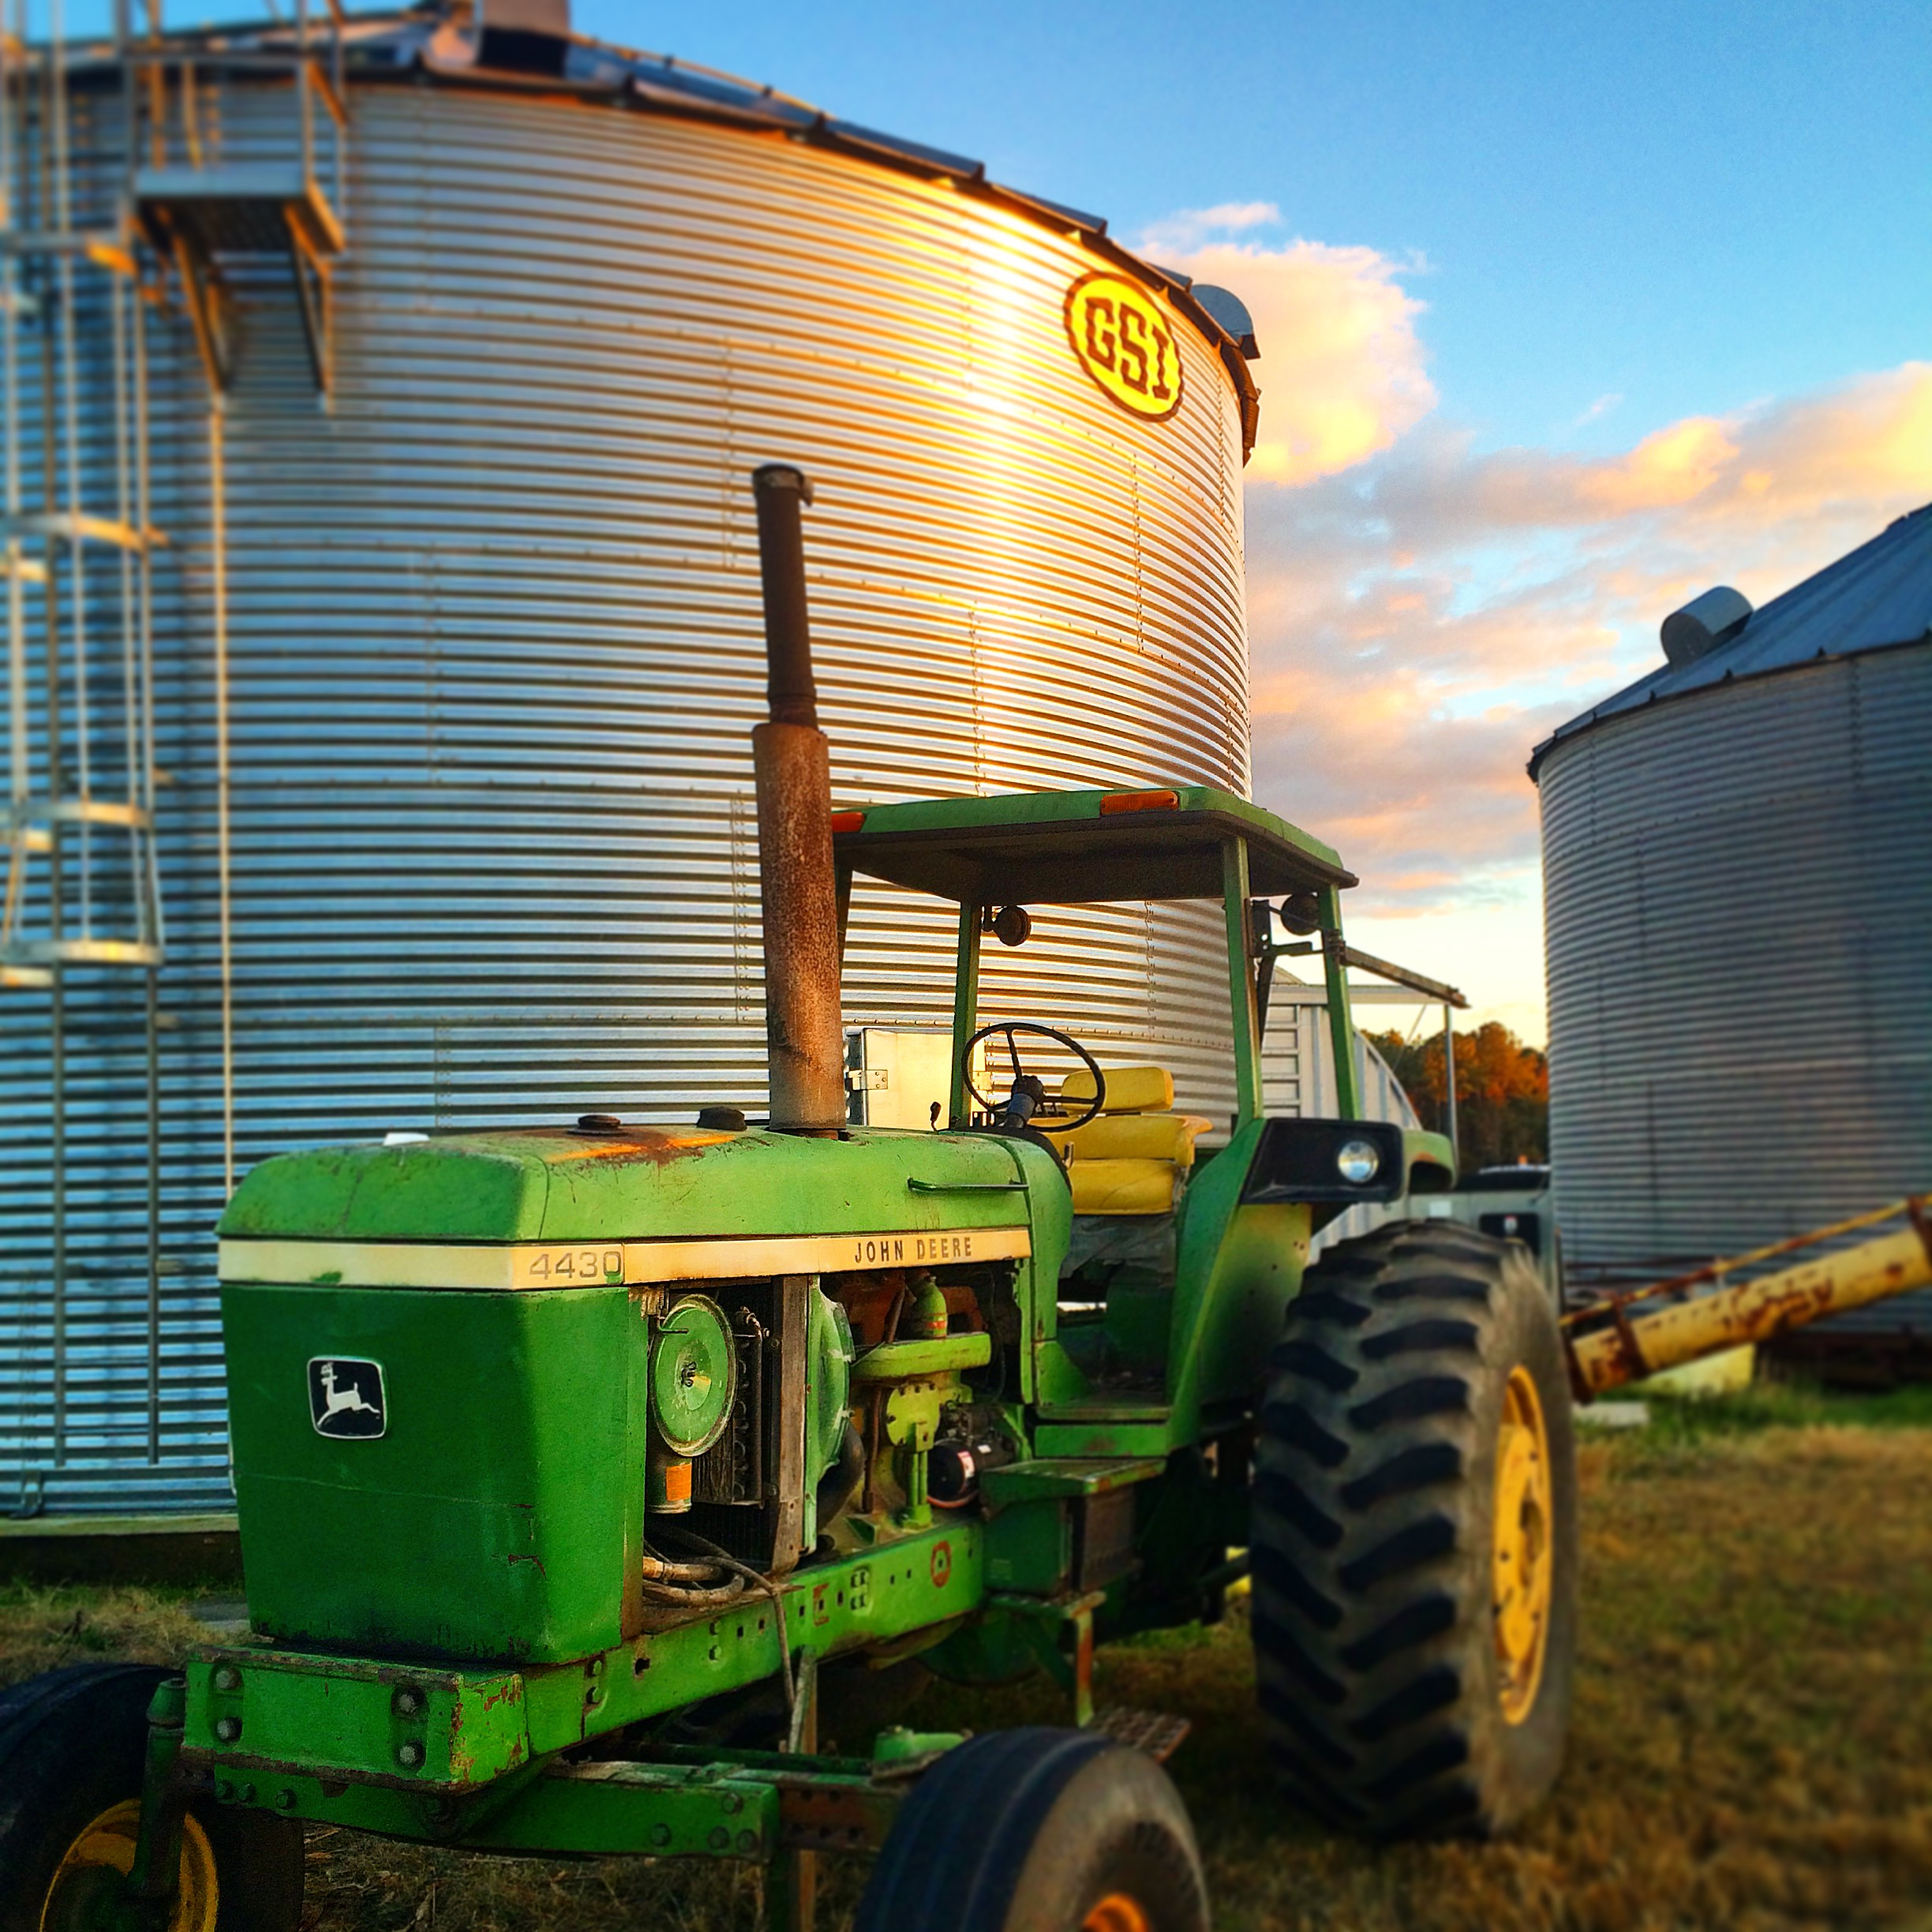 John Deere tractor in front of a corn silo